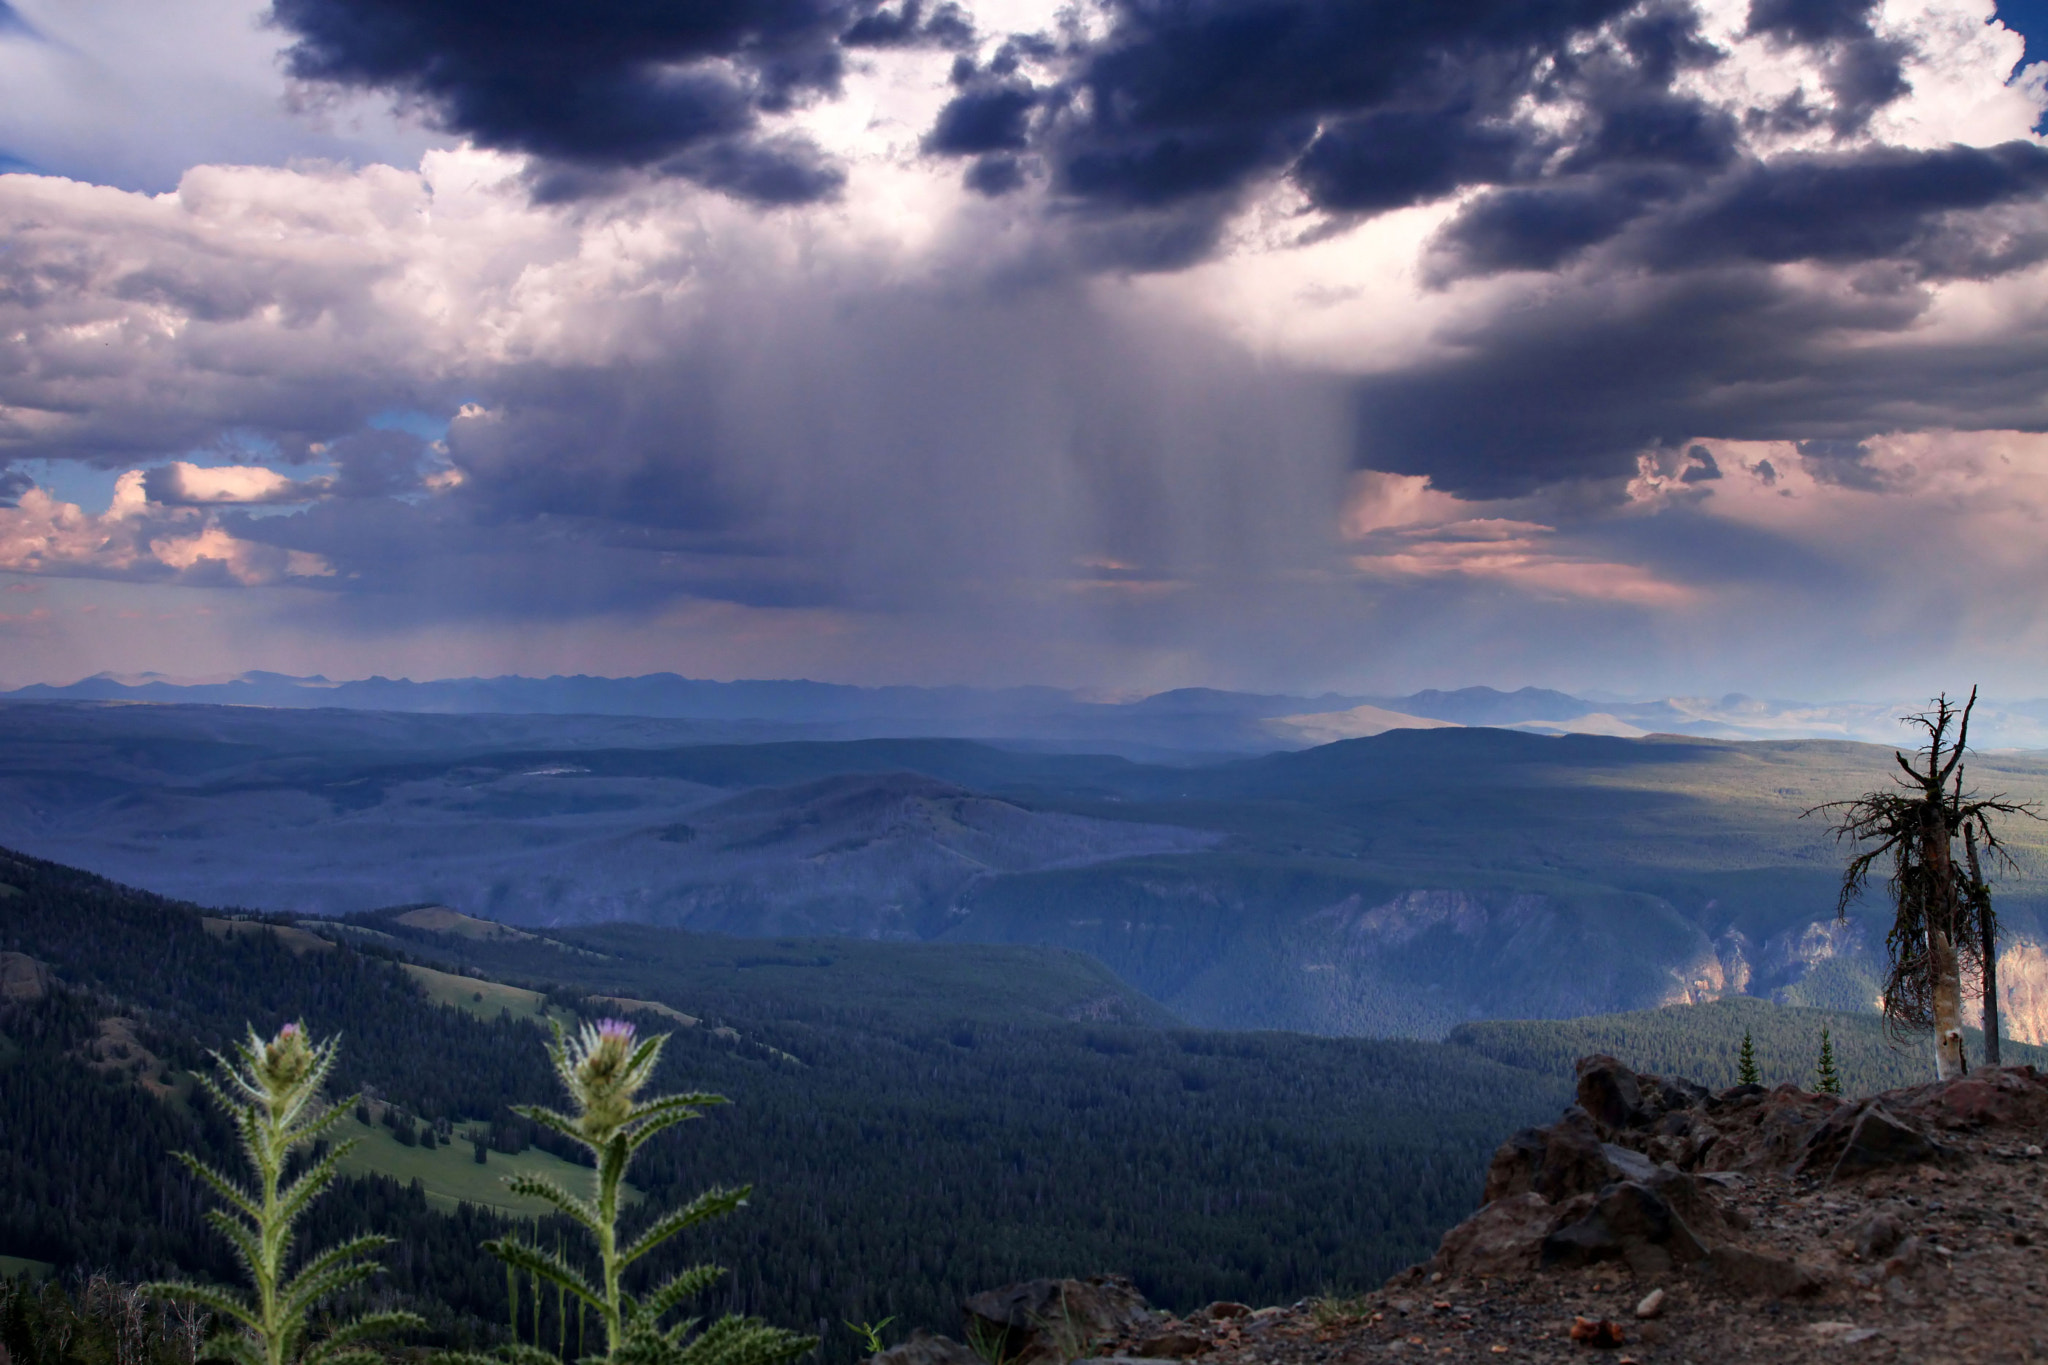 Photograph Rainstorm from Mount Washburn by Larry Herscovitch on 500px